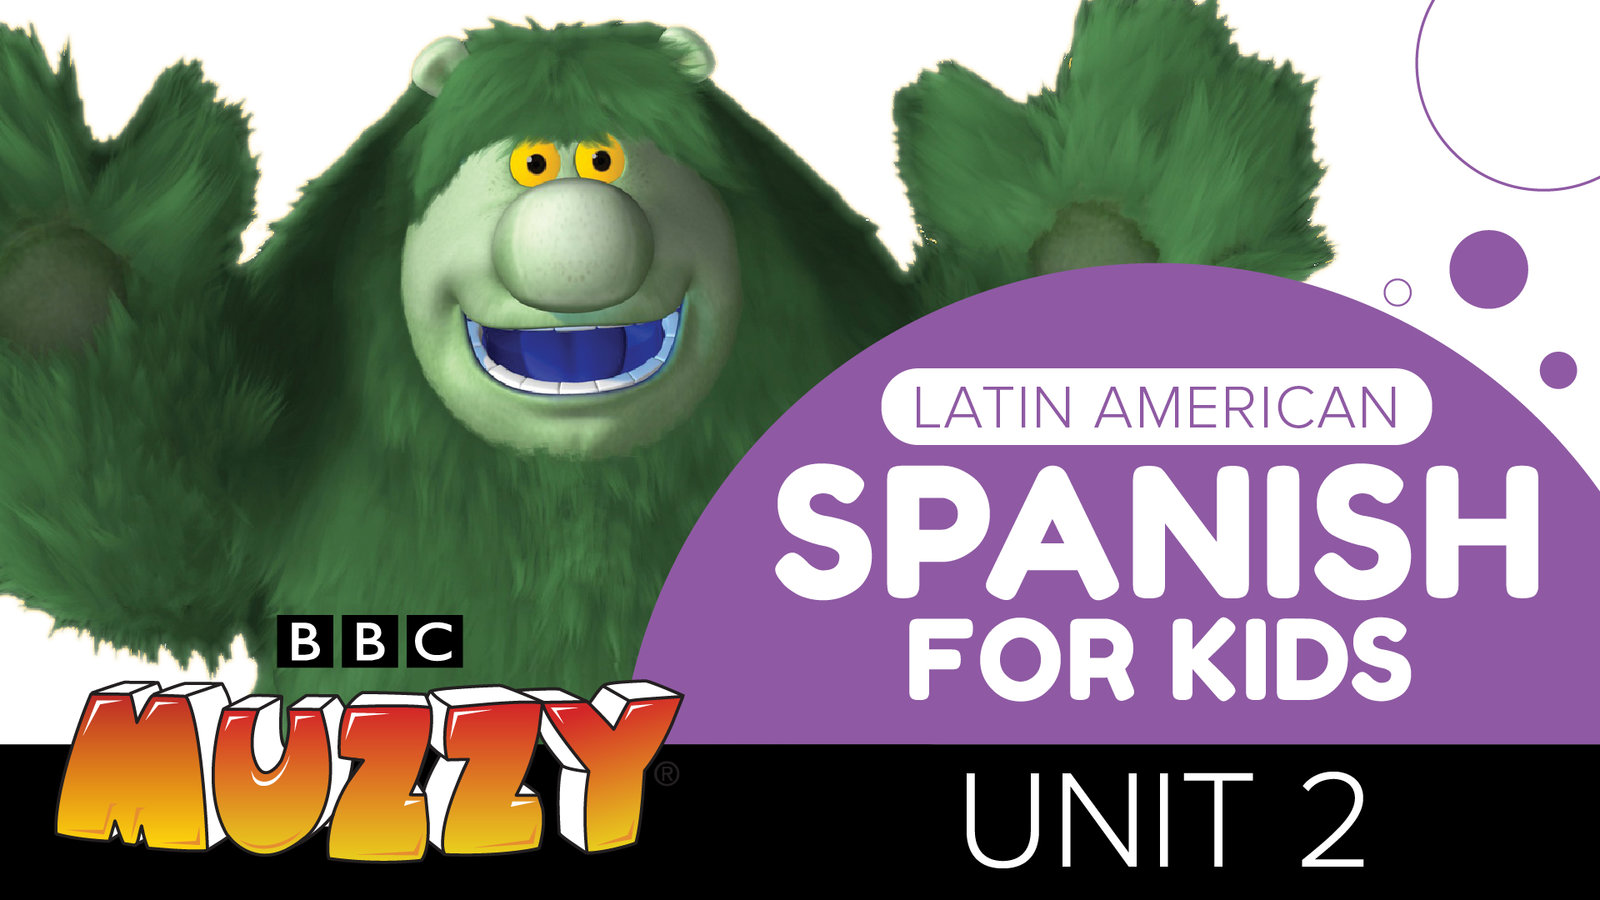 Spanish (Latin American) for Kids - Unit 2